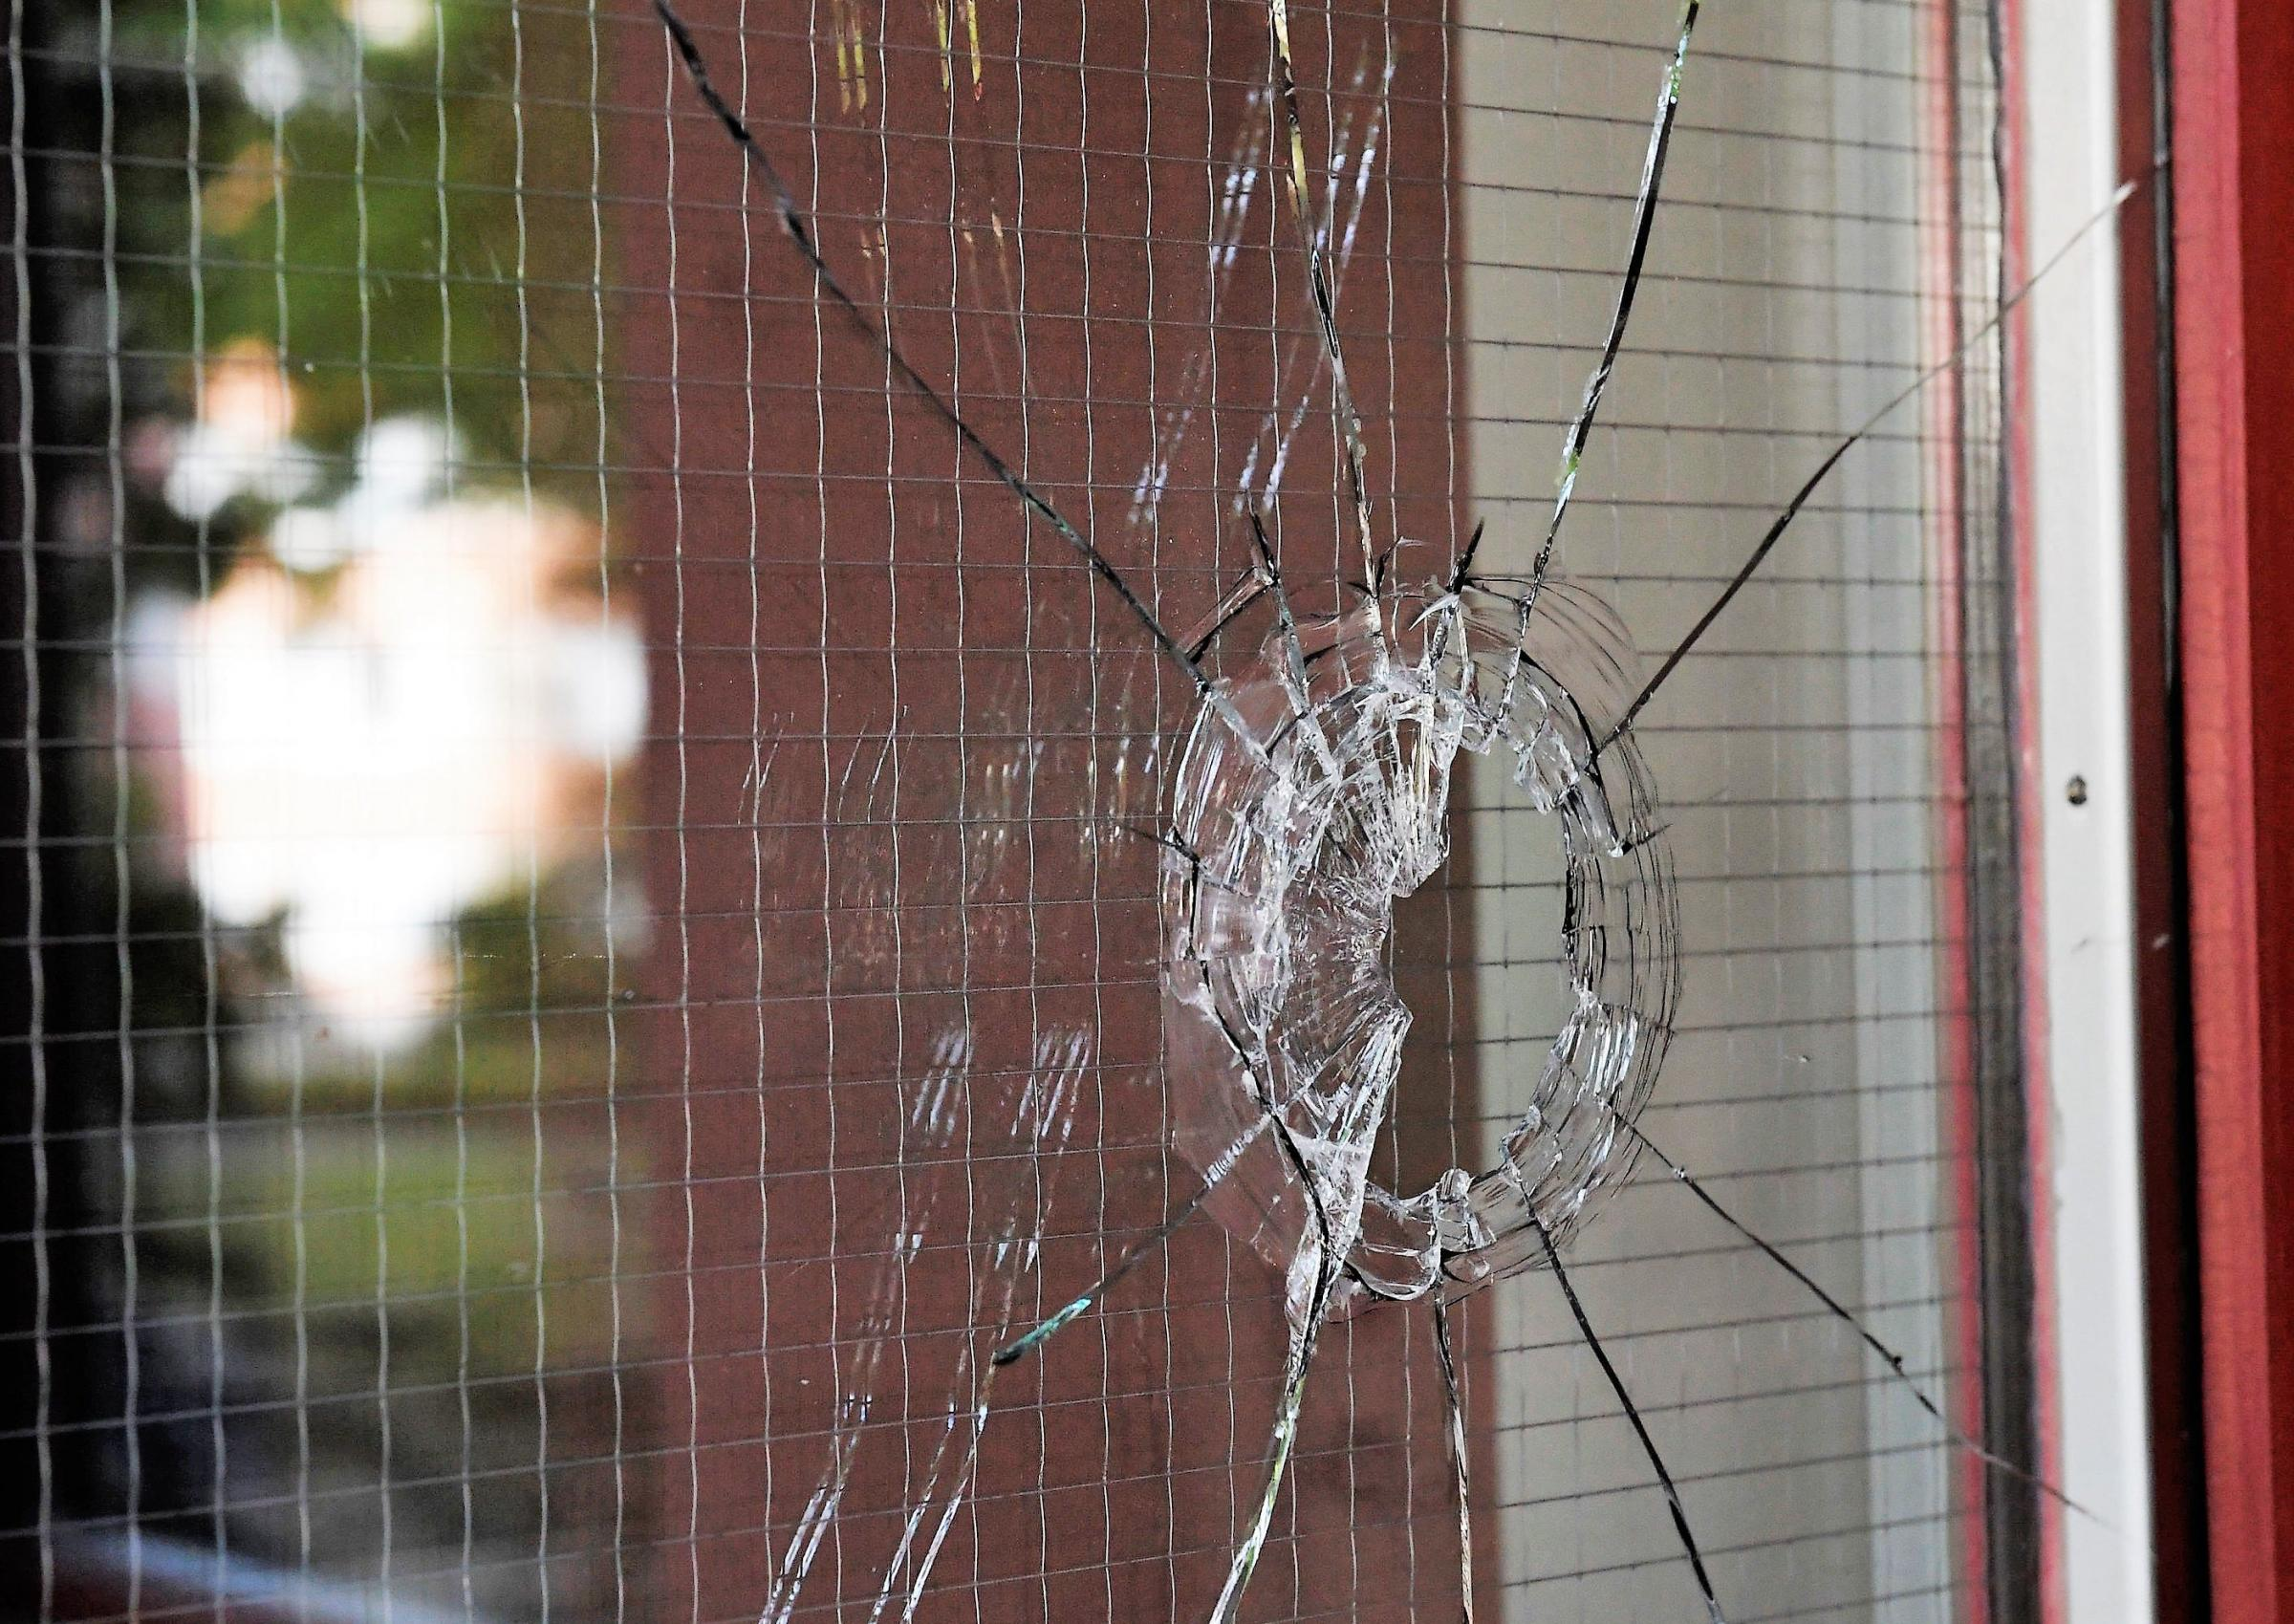 A hole in a glass door at the site where Eric Torrel was shot and killed by police